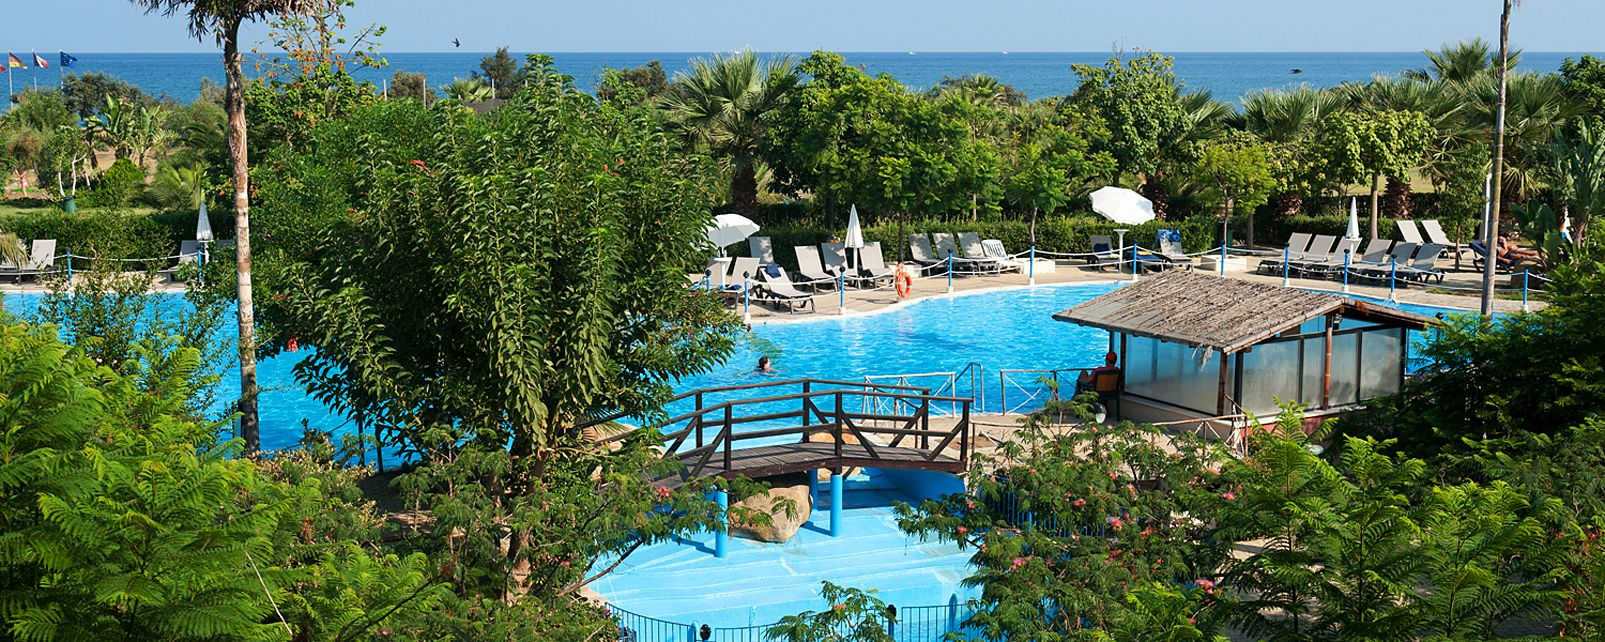 Hotel Fiesta Garden Beach Resort Sizilien